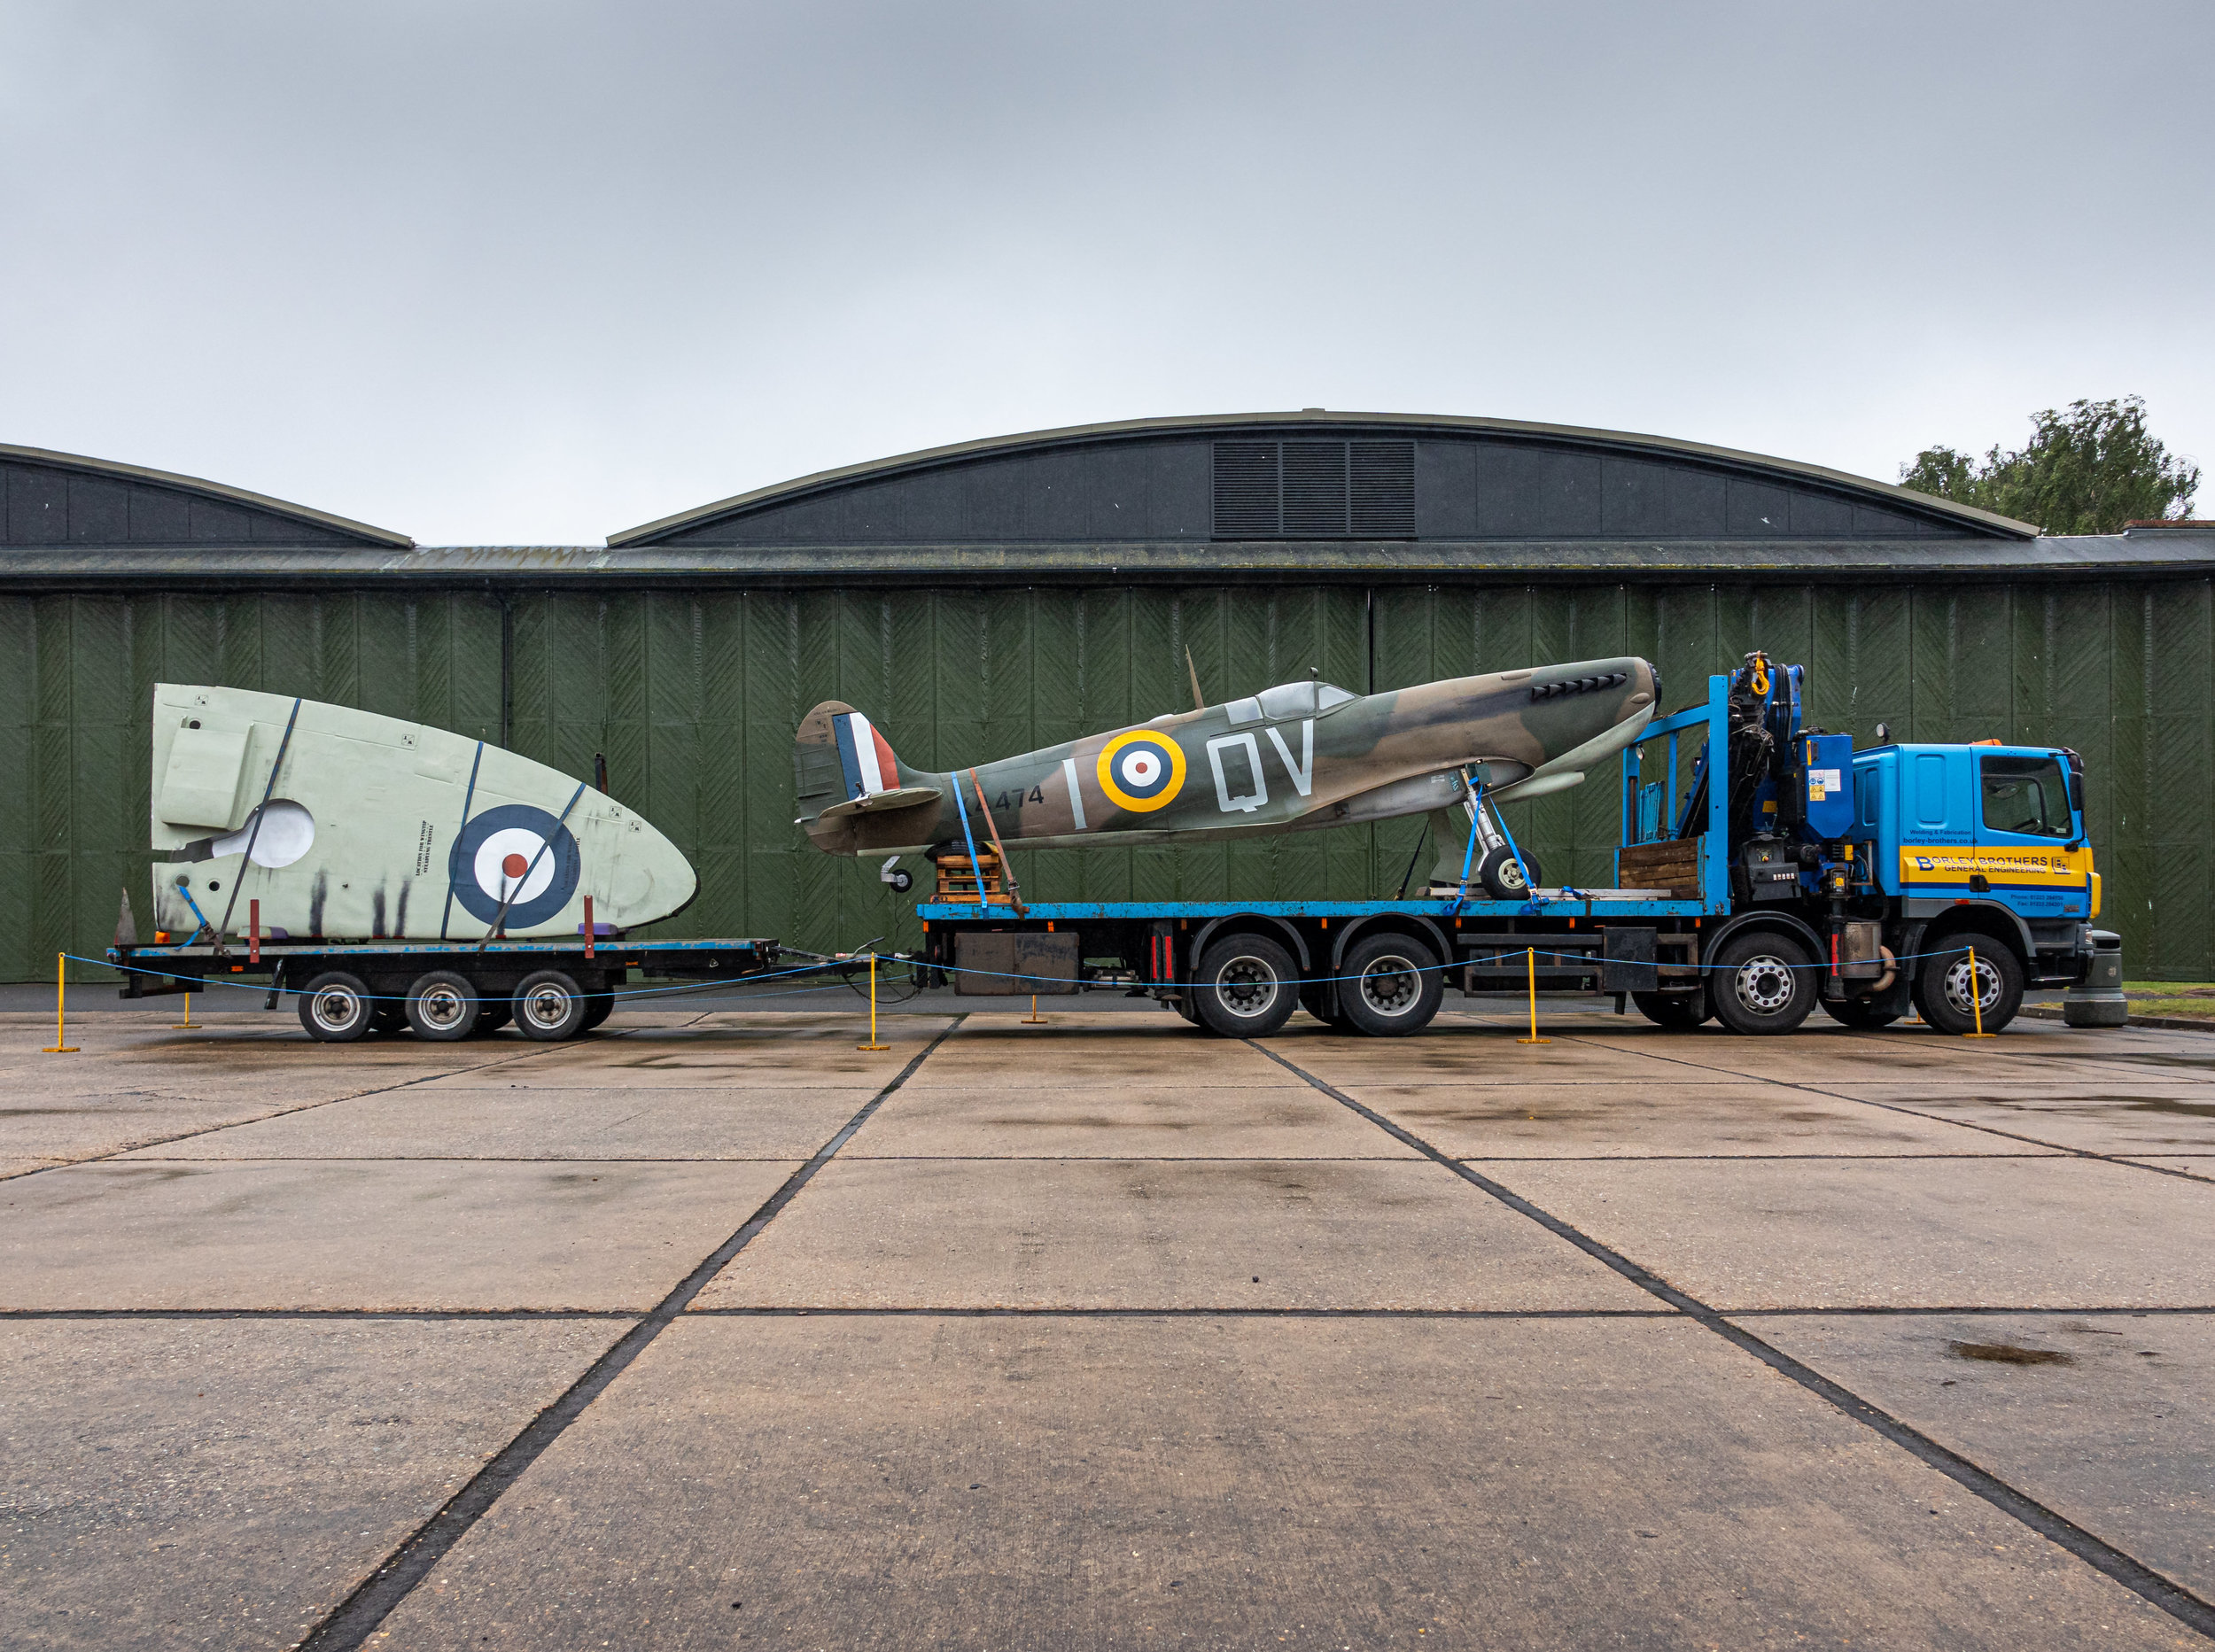 My last sight before leaving the museum was this Spitfire loaded on a tandem tractor-trailer. I guess it must have been used in one of the many 75th anniversary of D-Day shows that recently took place.